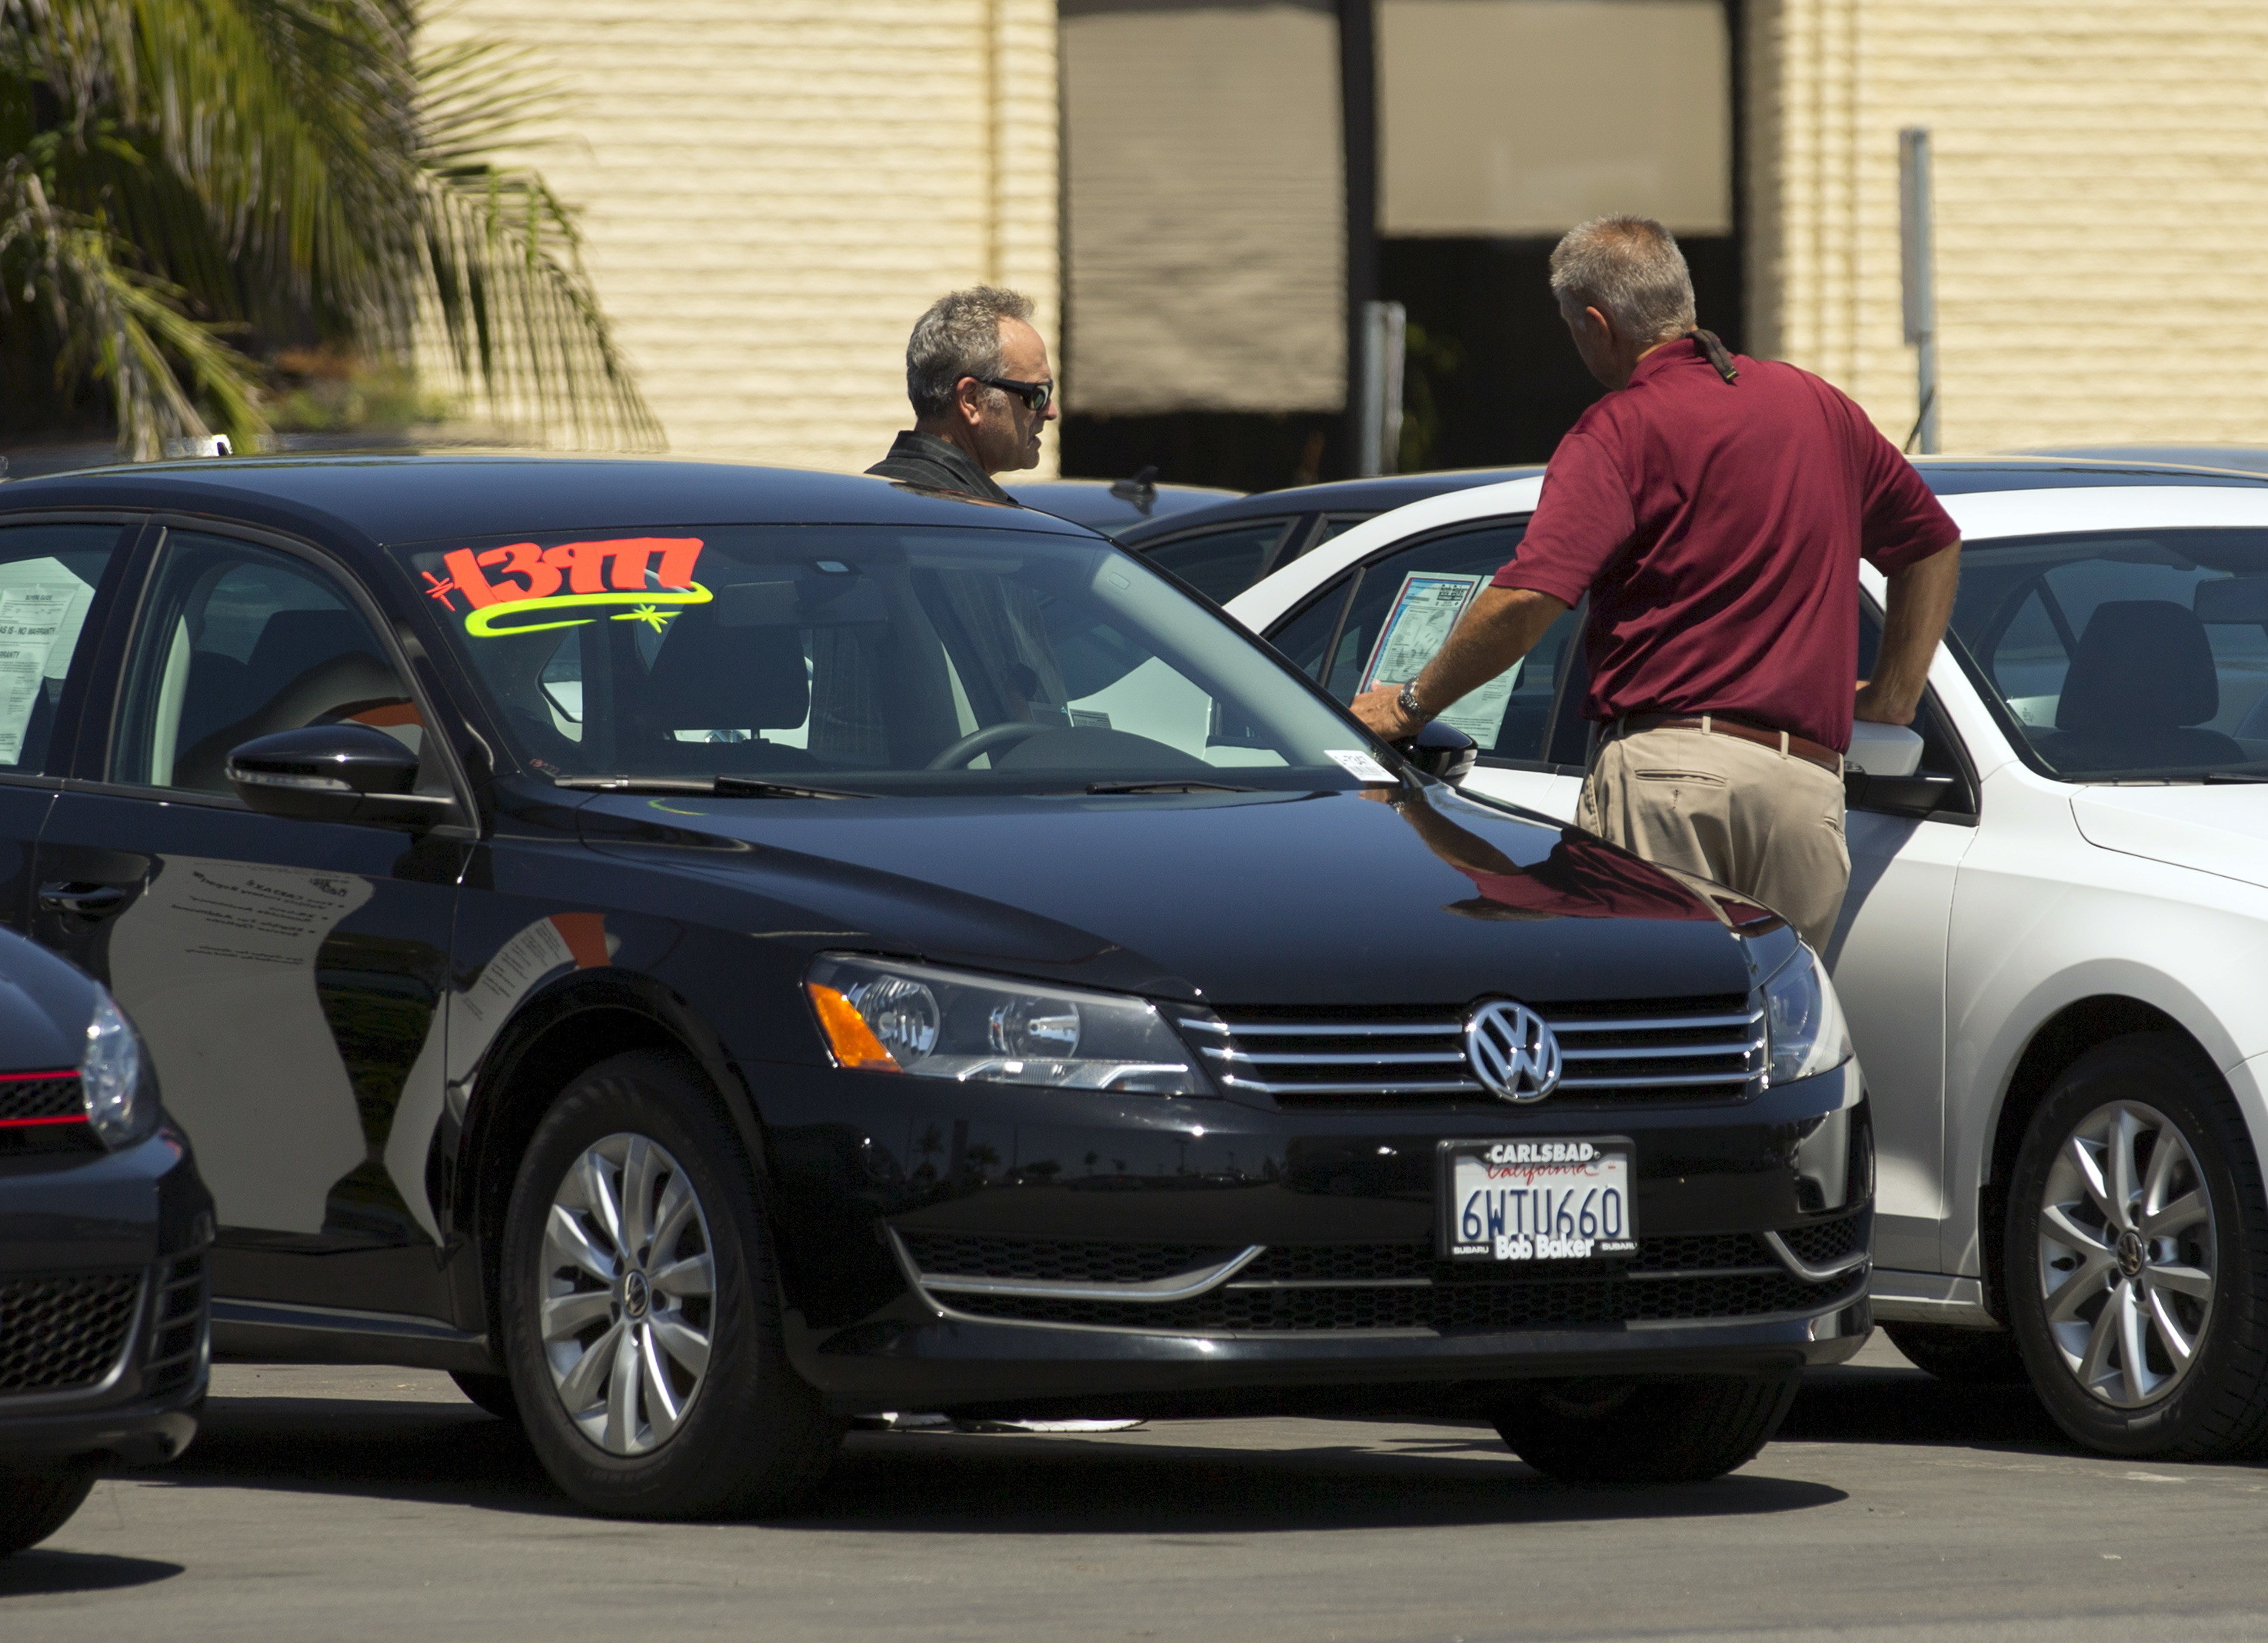 A car salesman shows a customer a vehicle on a car lot in Carlsbad, California August 28, 2015. REUTERS/Mike Blake  - GF10000185754